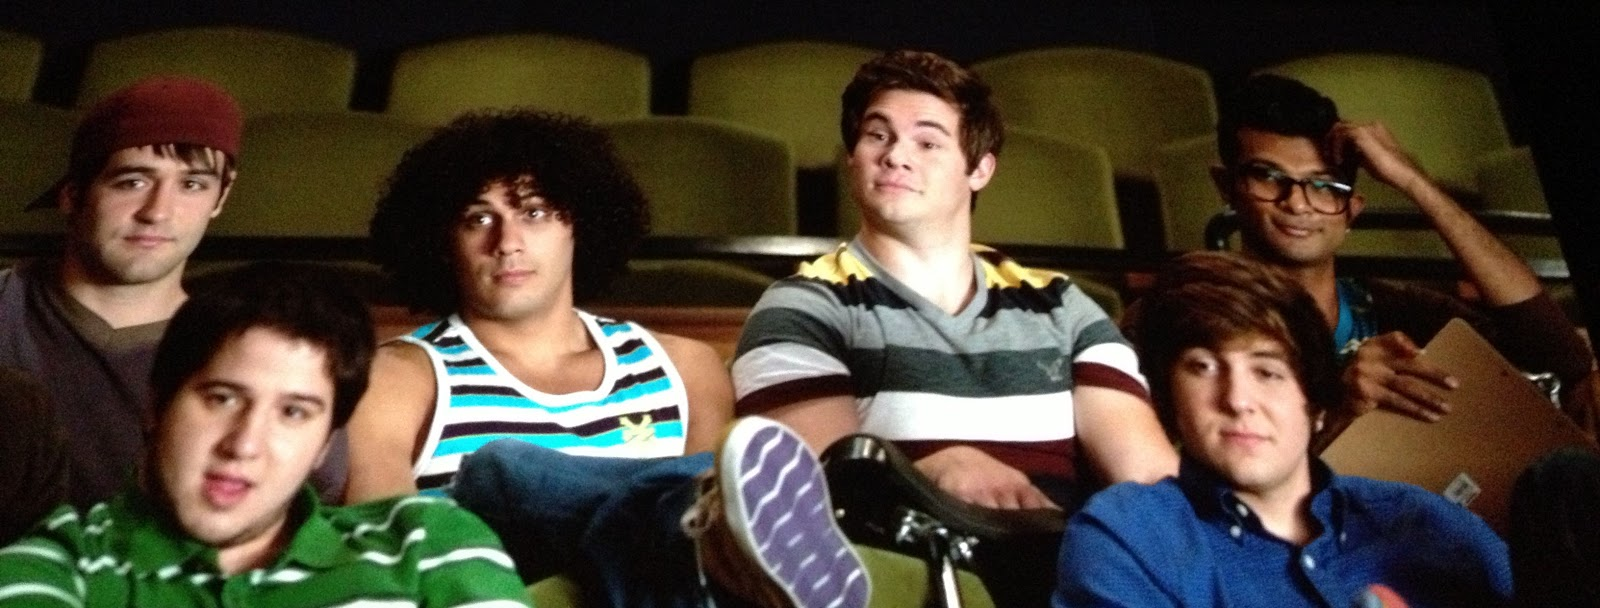 Image - Wes10.jpg - Pitch Perfect Wiki  Image - Wes10.j...